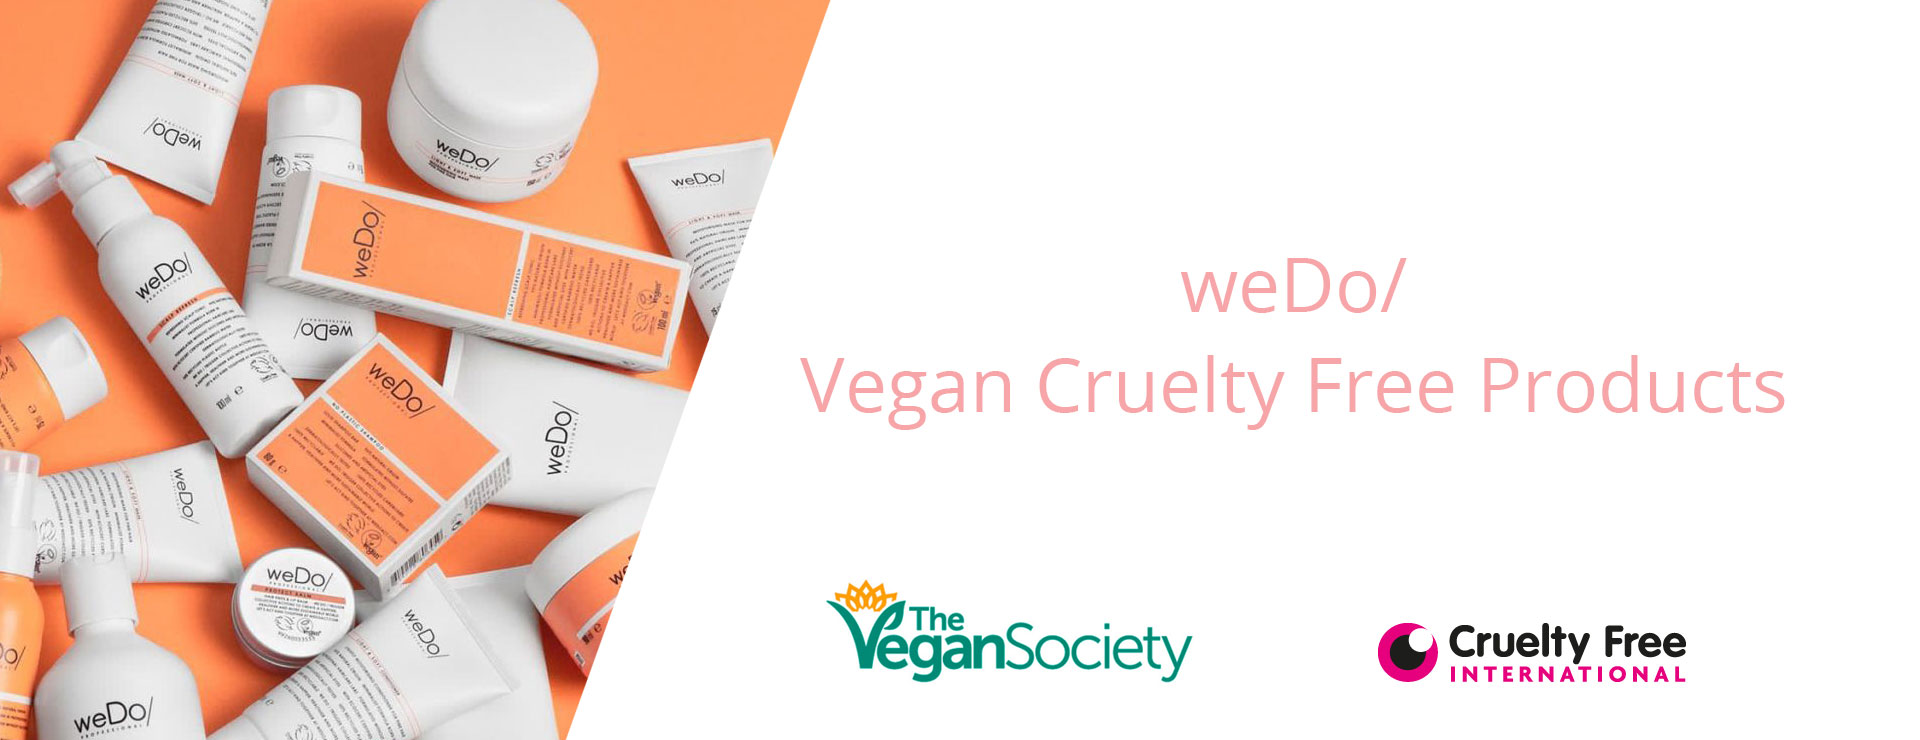 weDo Vegan Cruelty Free Products at avant garde hair salons Worcester & Hereford